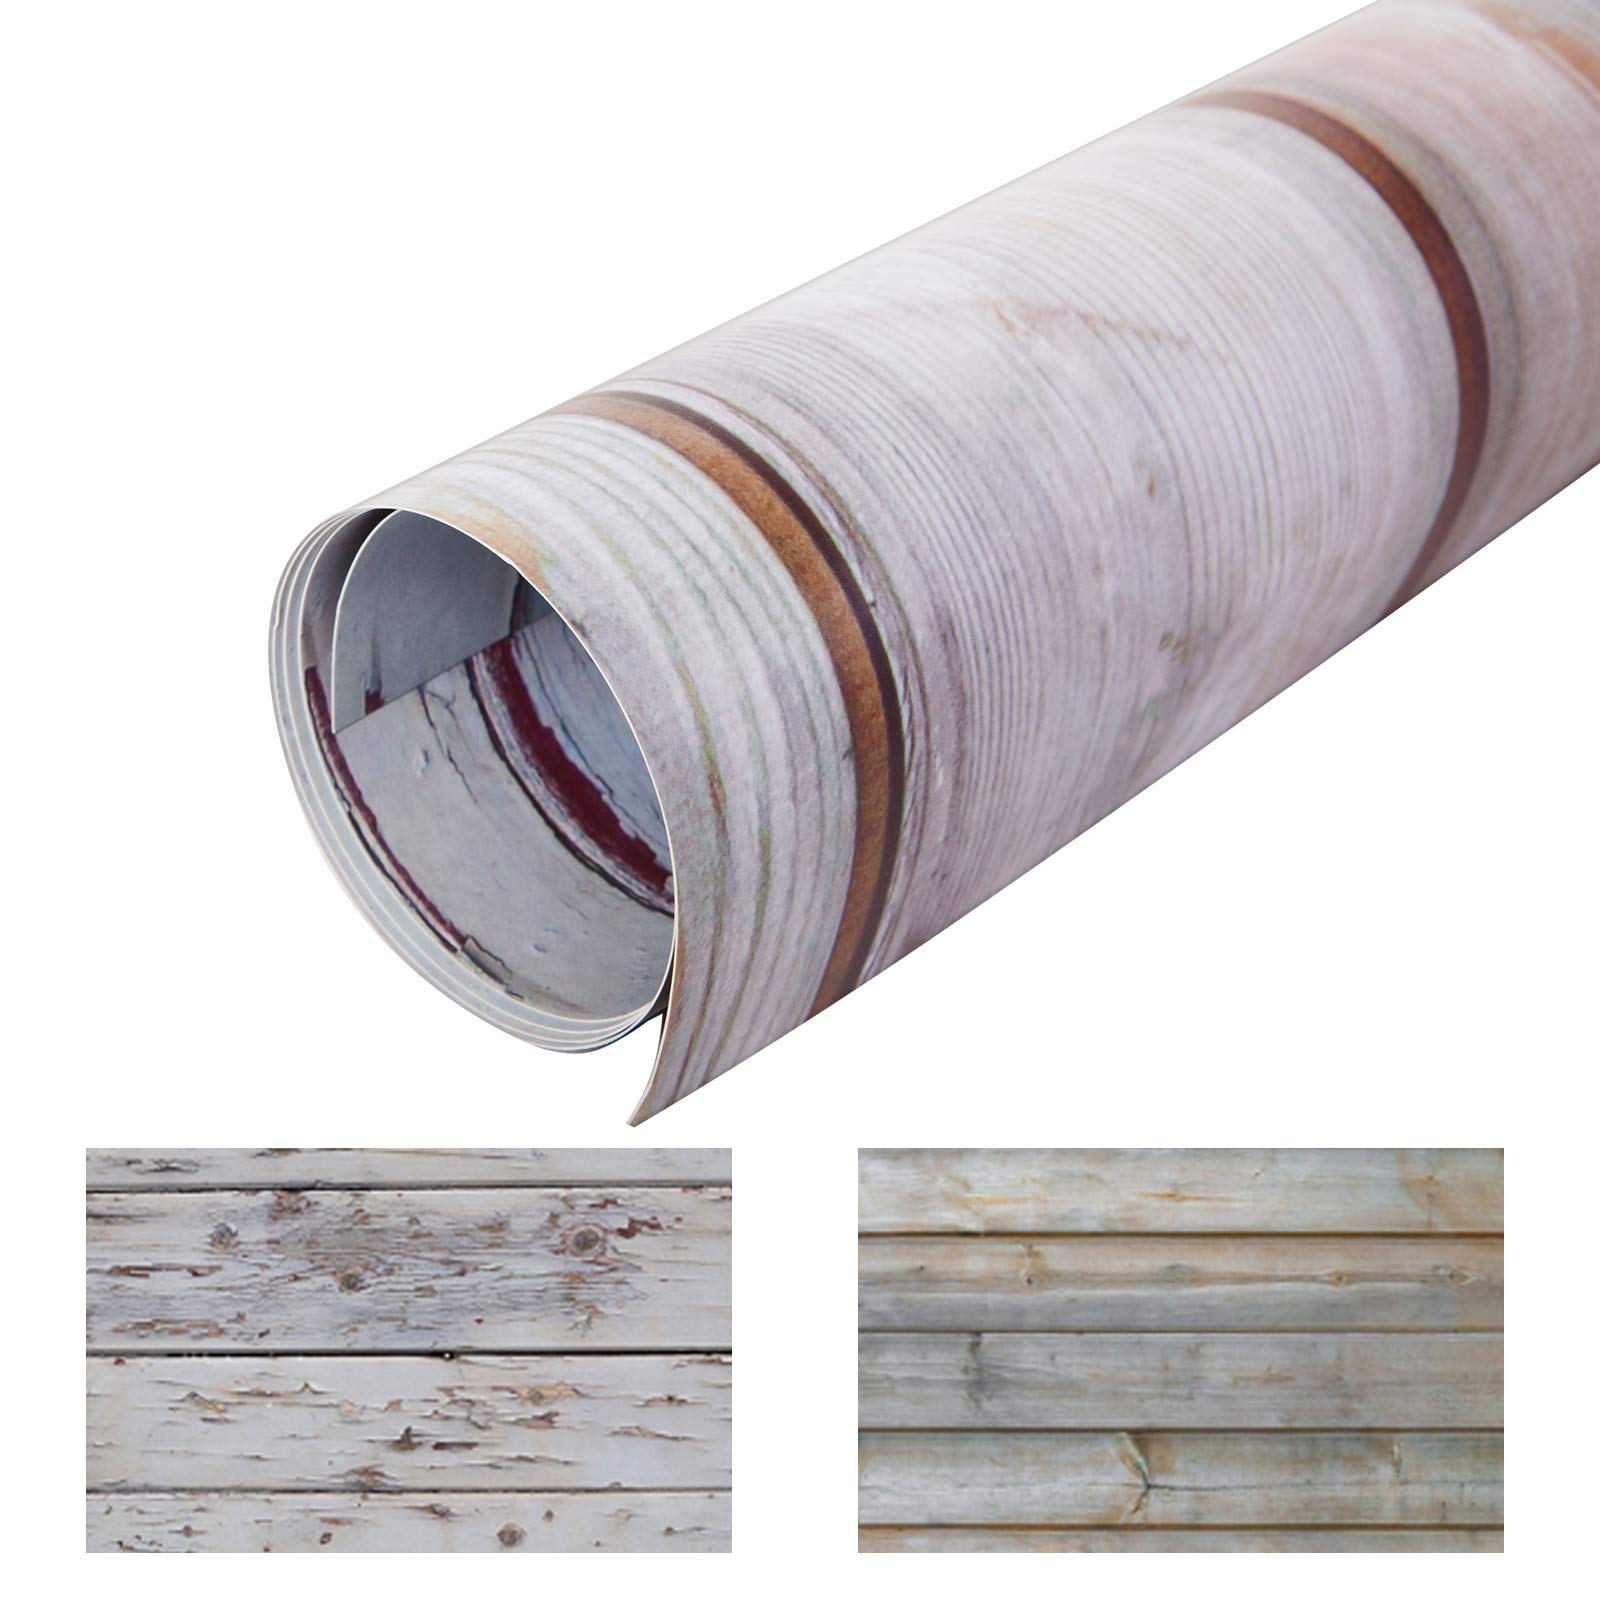 Selens 22x35Inch 2-in-1 Food Photography Wooden Background 4pcs Paper for Photographers, Foodies, Gourmet Bloggers, Cosmetic Sellers, Online Stores Product Photography, Life Photos and More by Selens (Image #6)